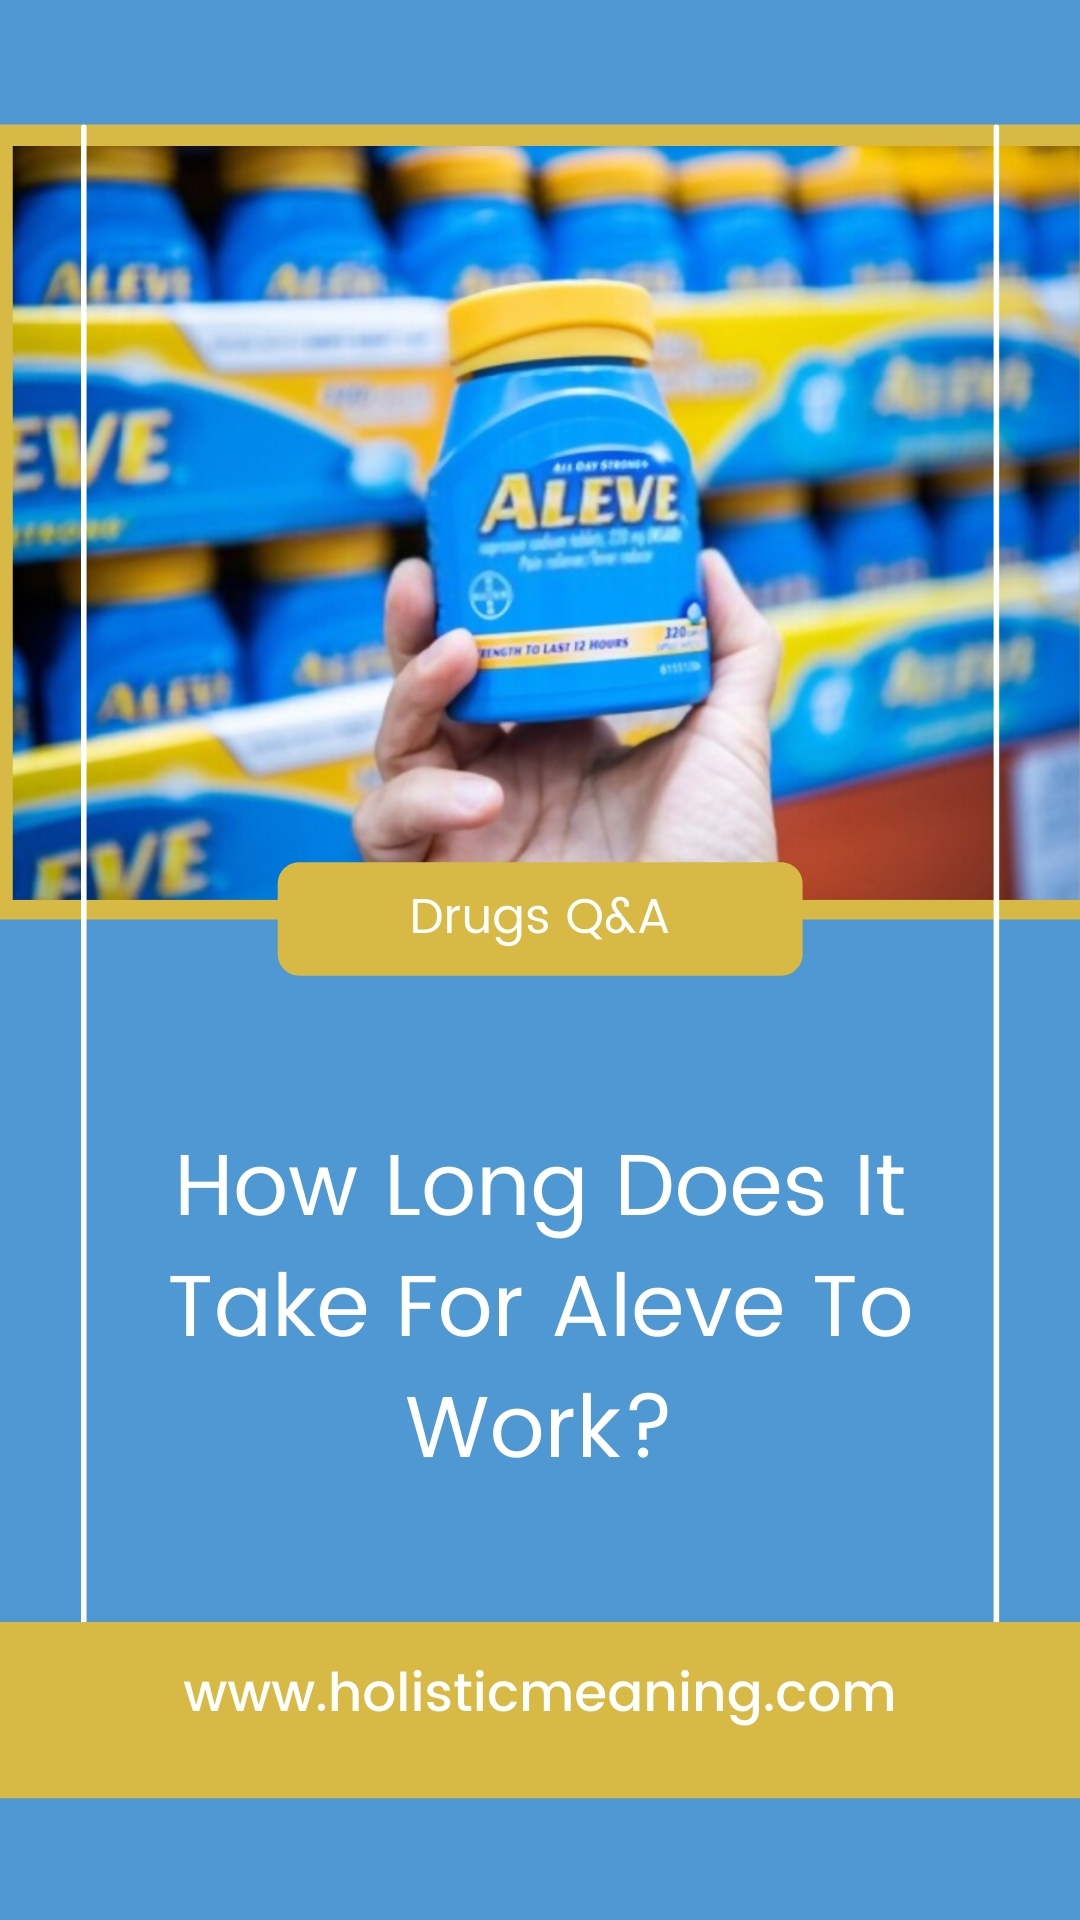 How Long Does It Take For Aleve To Work?